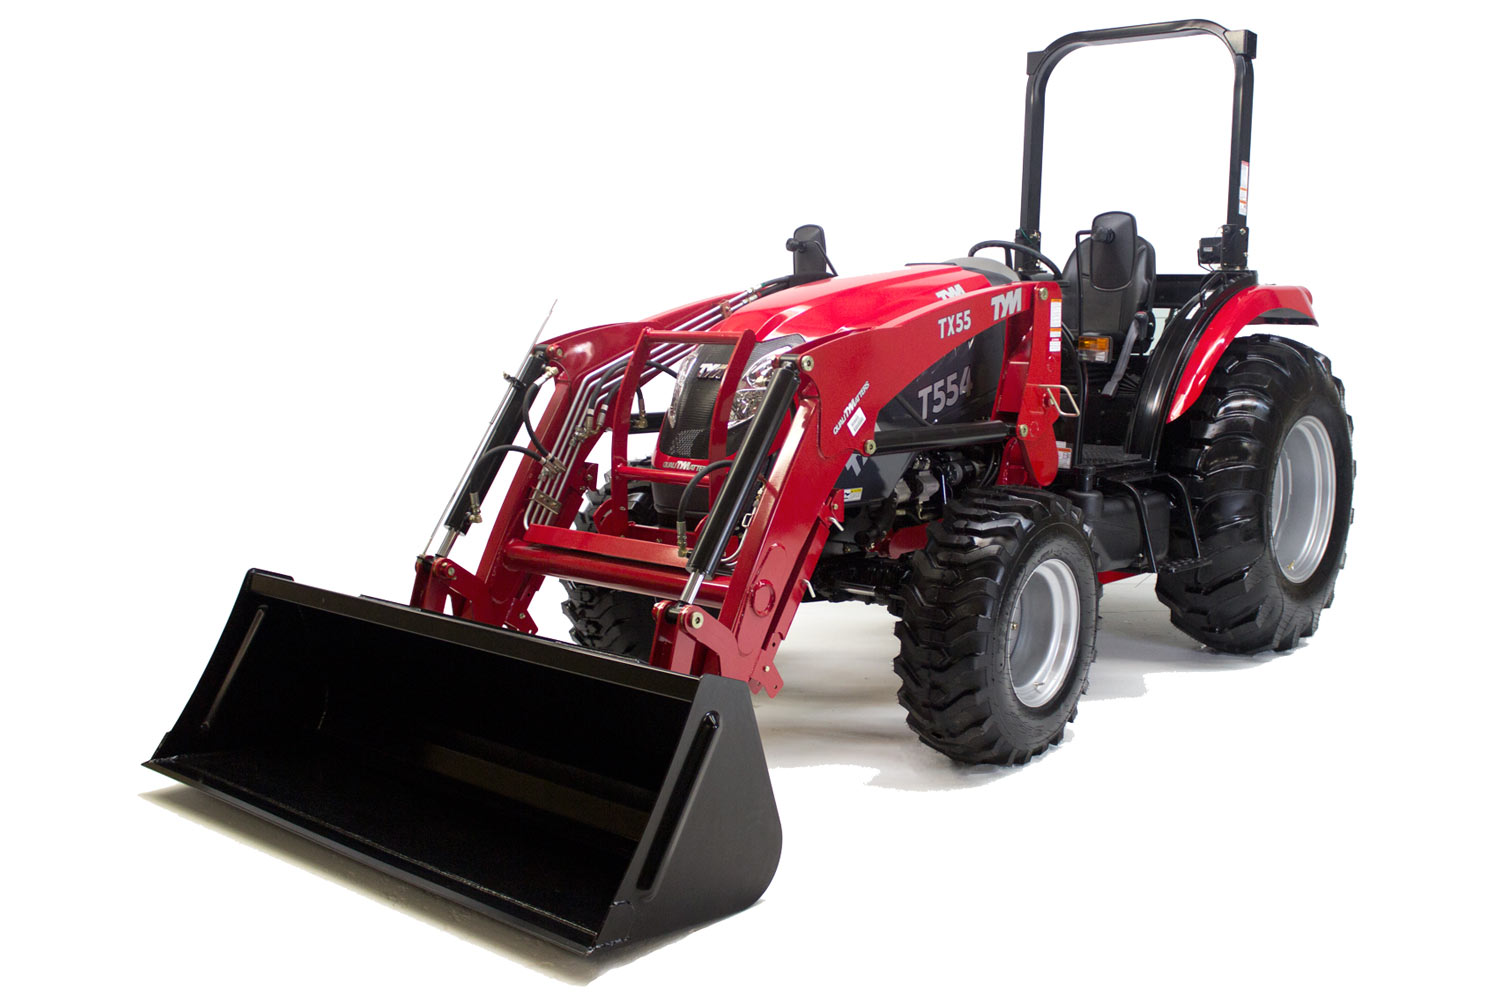 T554 (HST) Compact Tractor - TYM Tractors